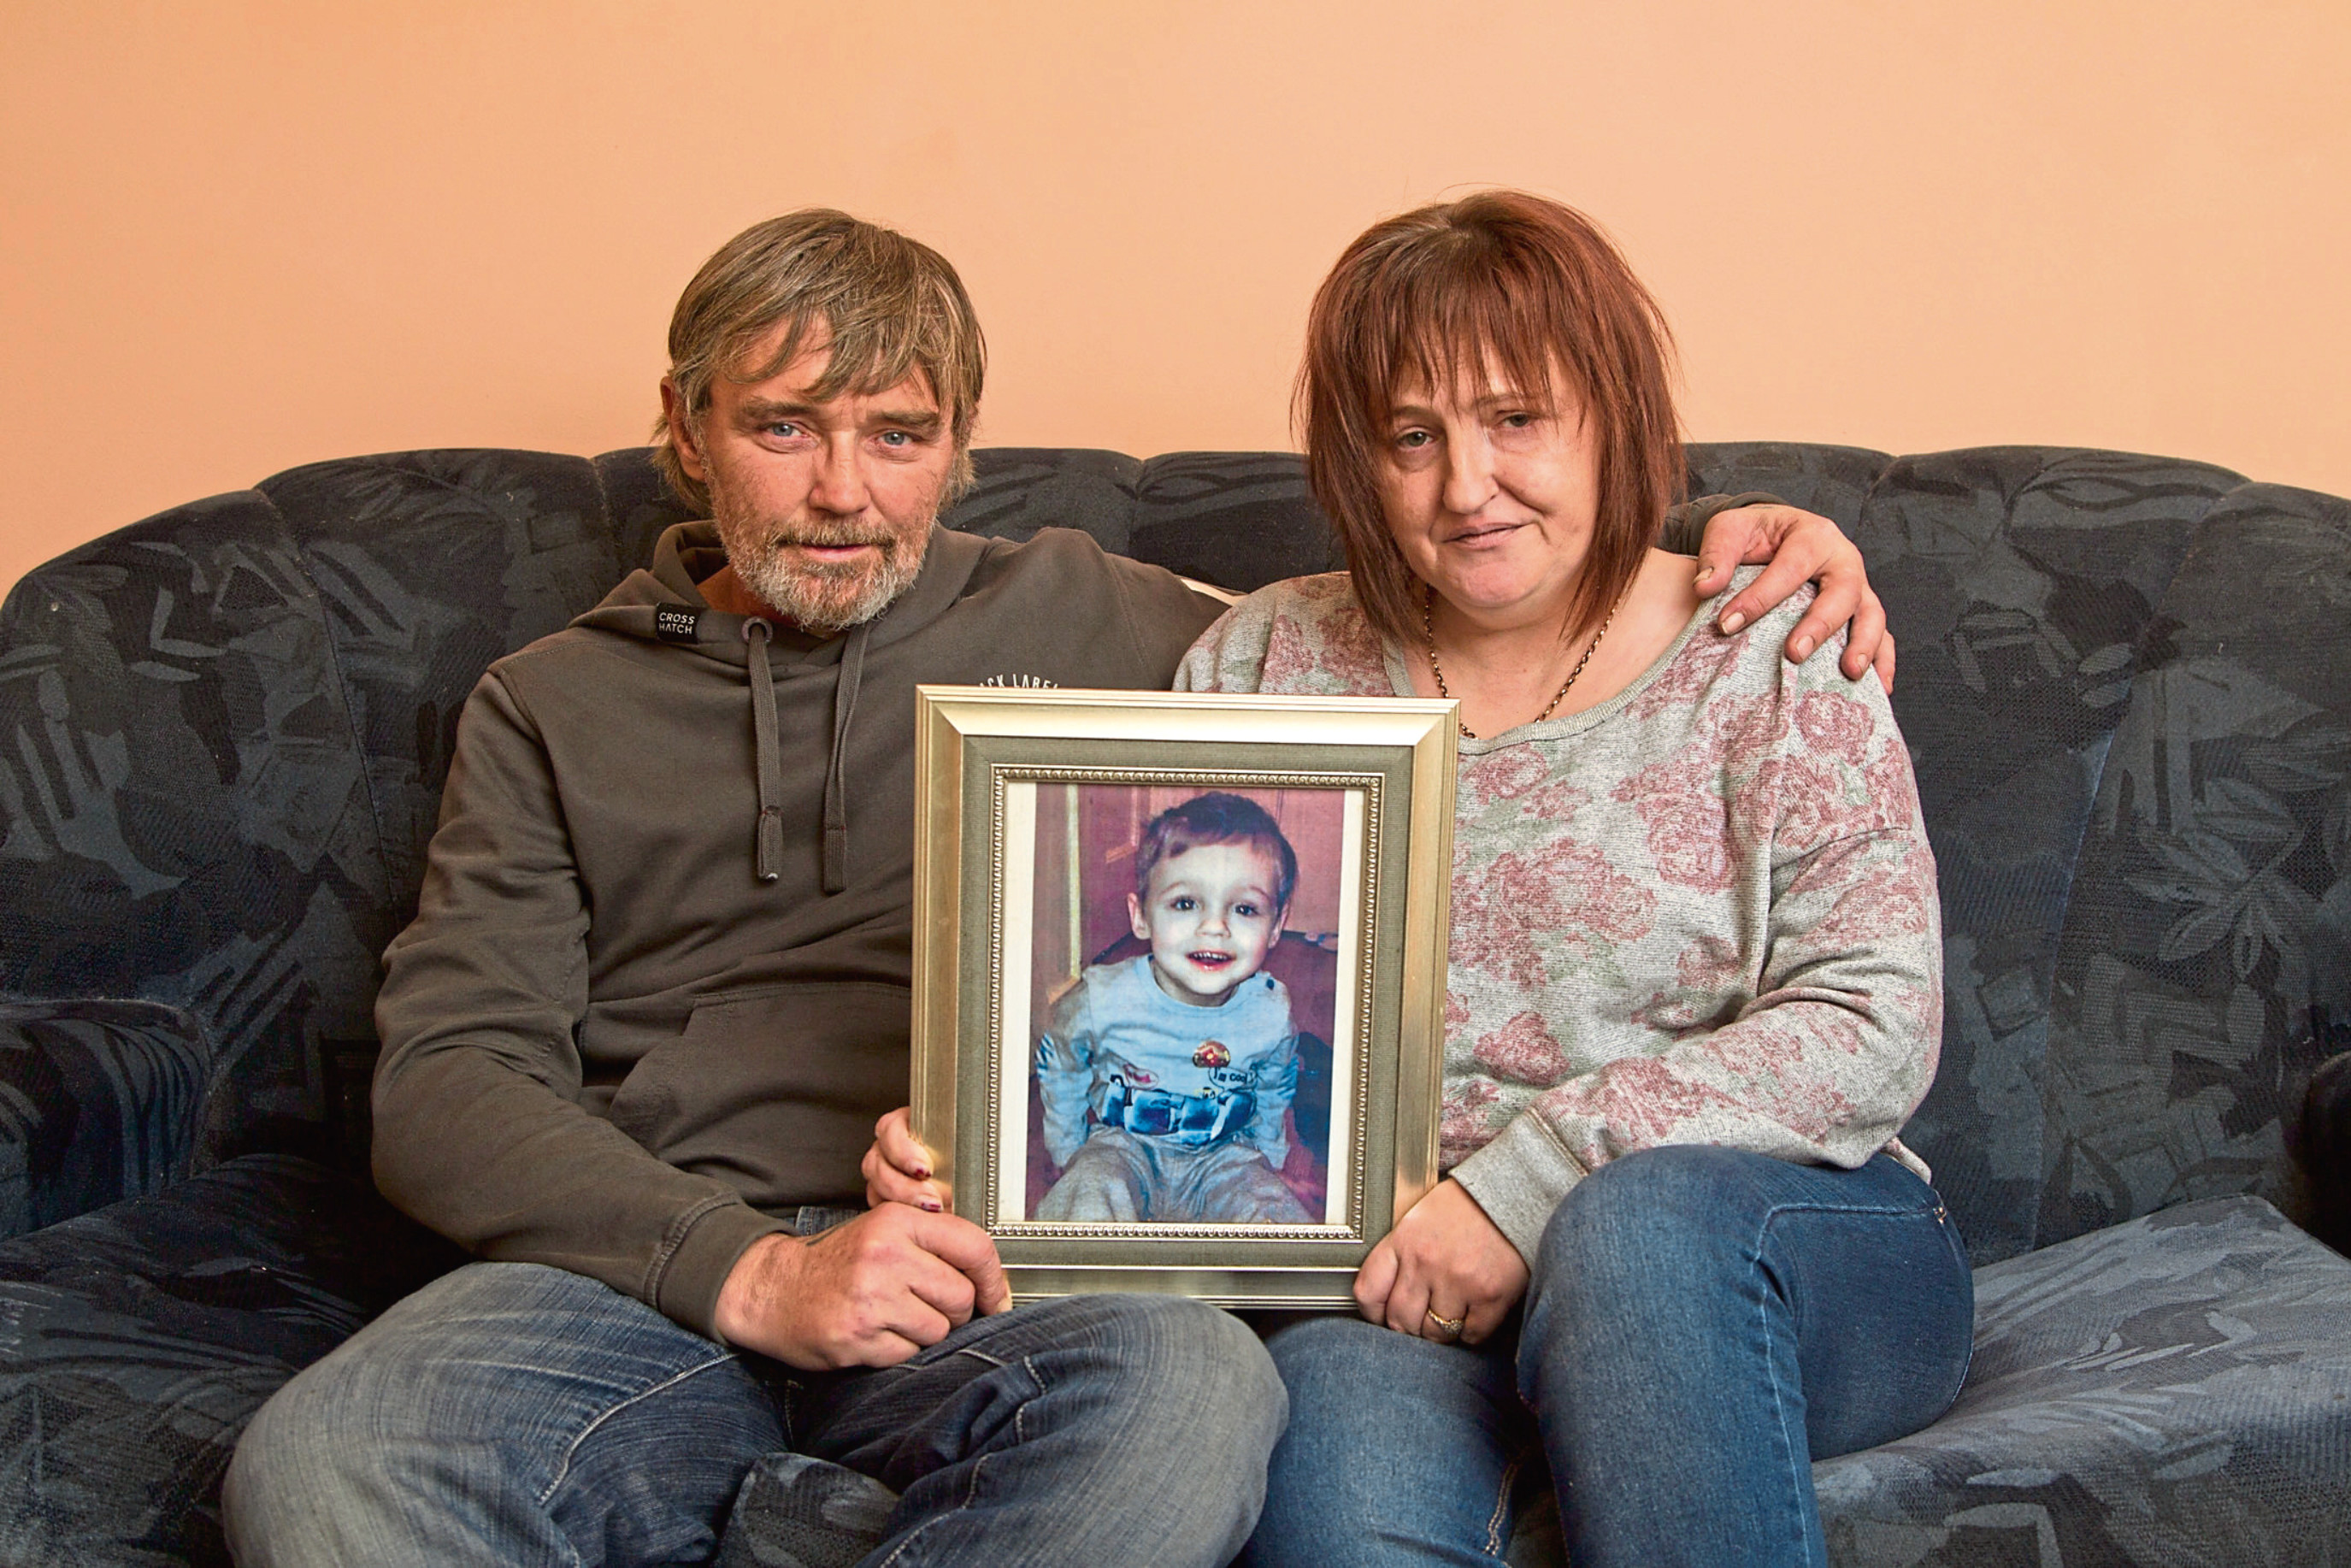 Wayne Forte and Leanne Smith with a photo of their son. Leanne has since passed away.